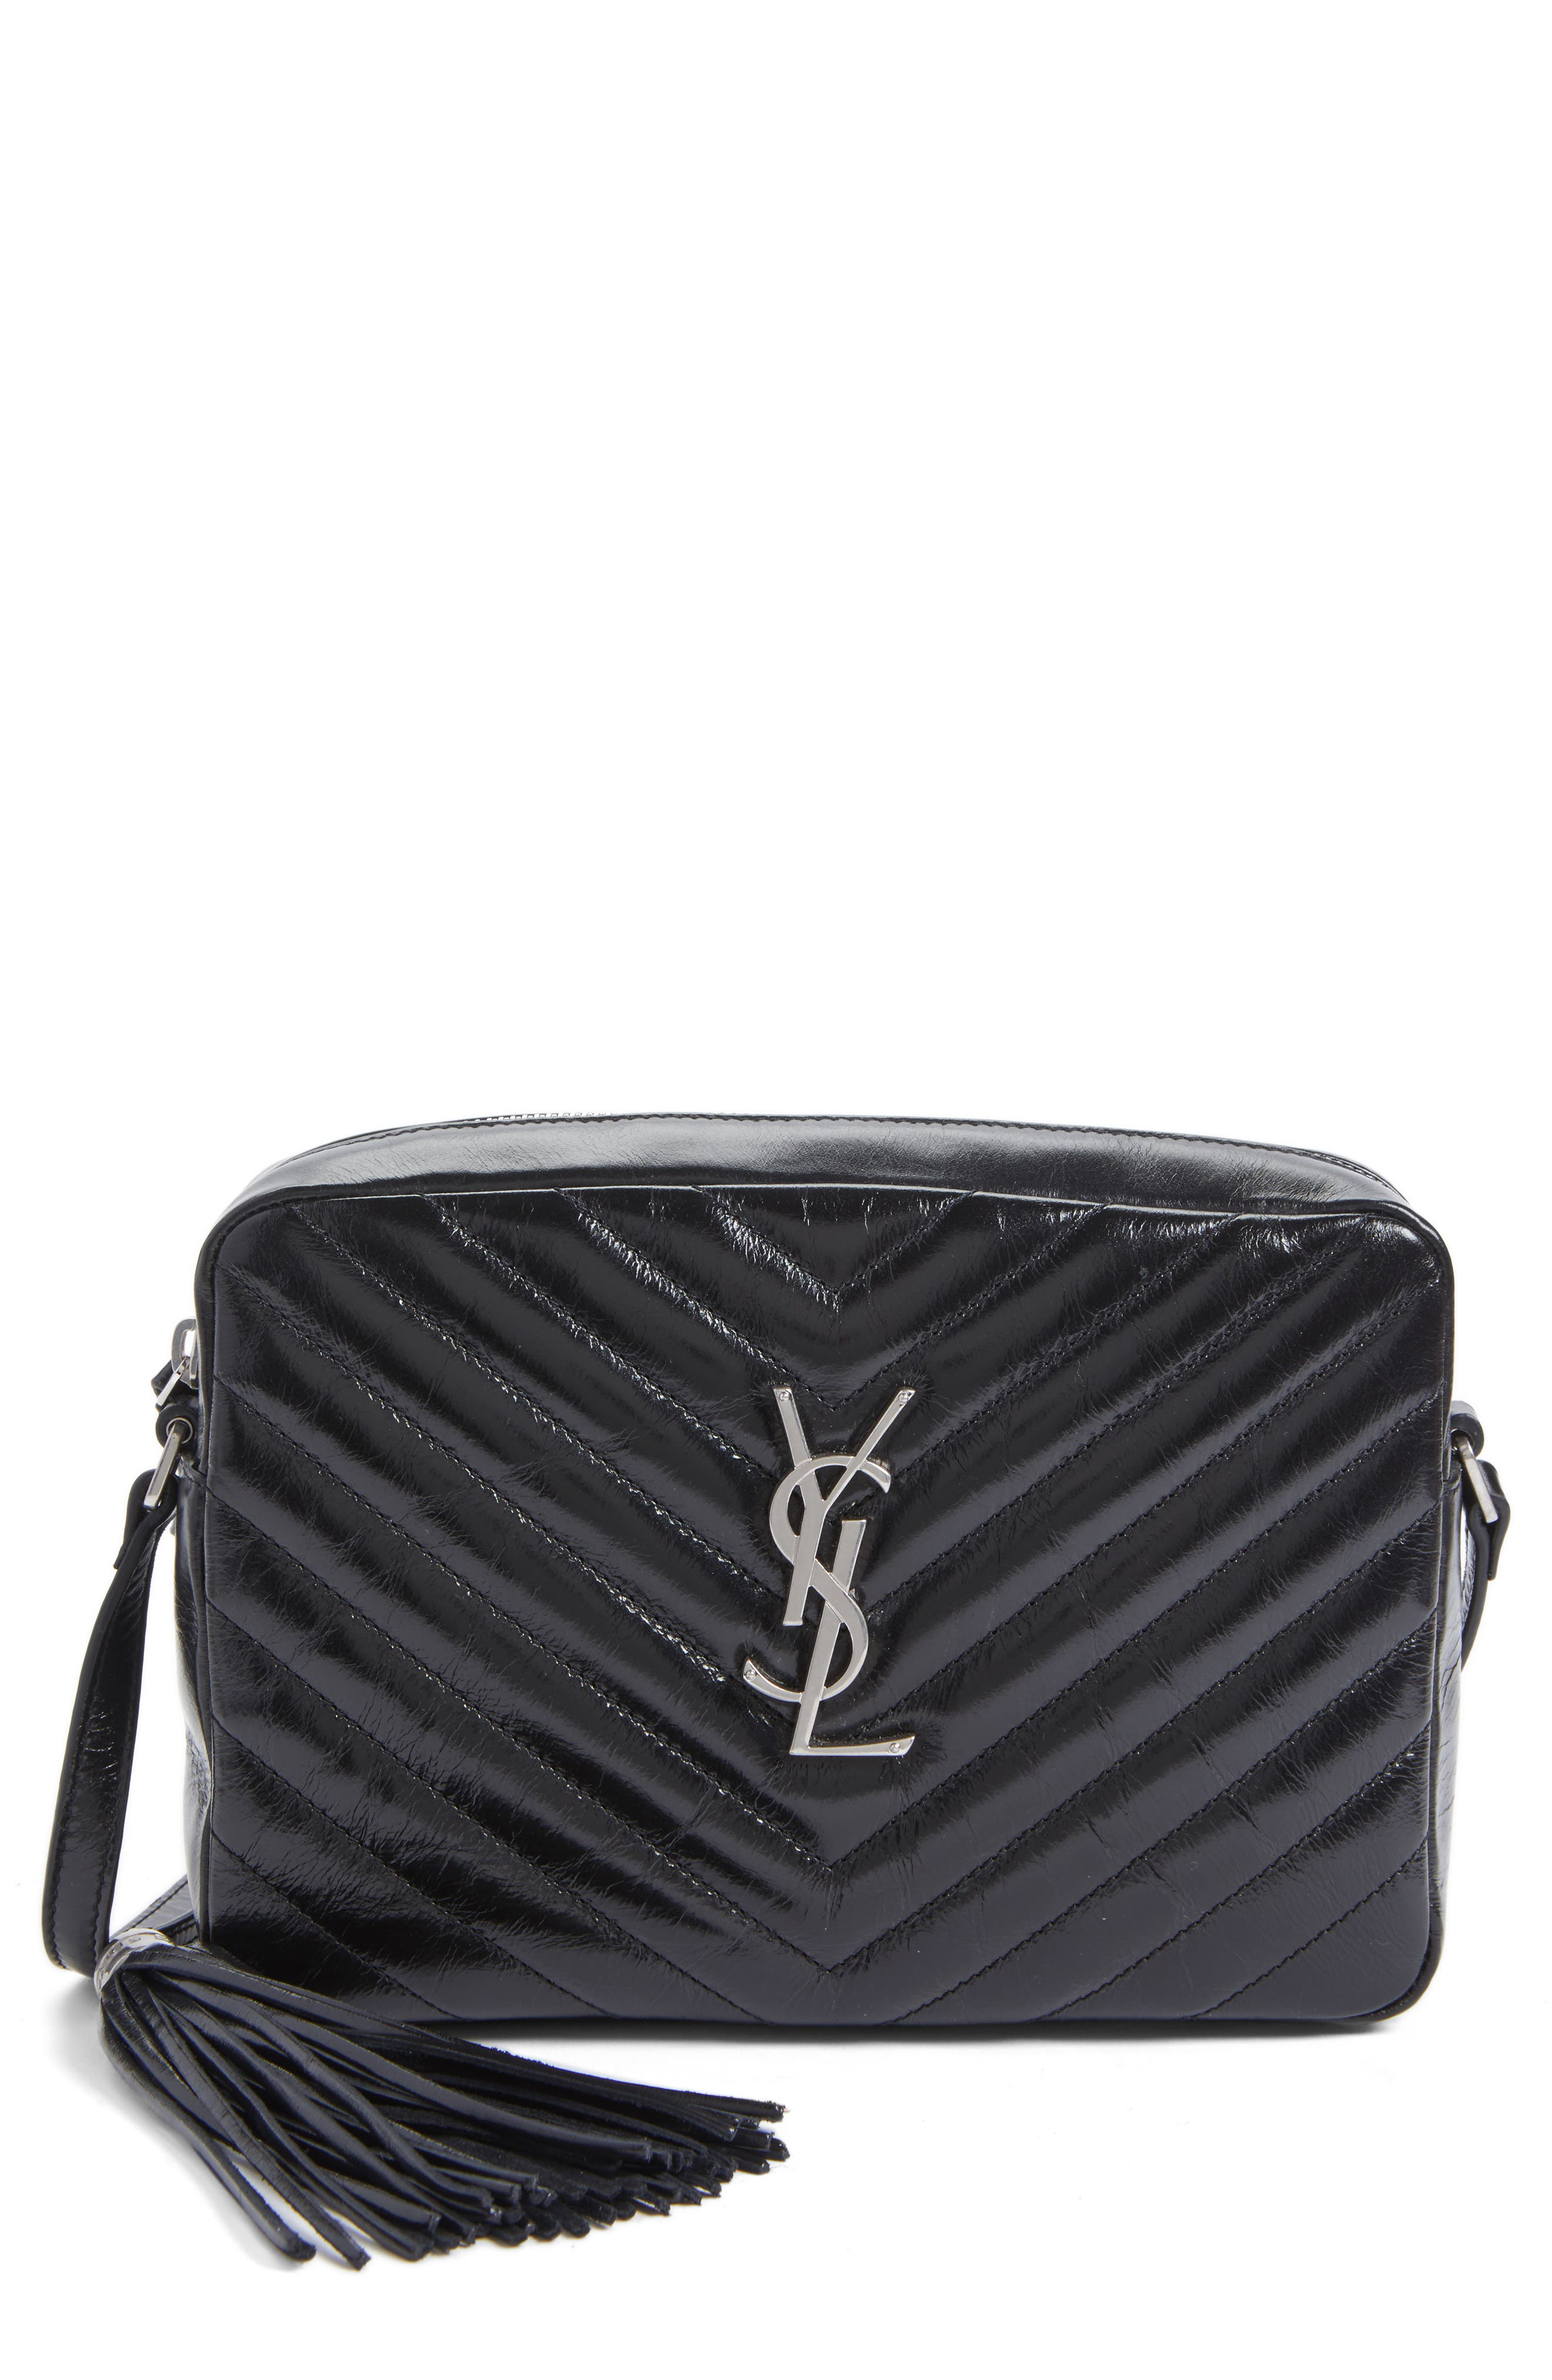 SAINT LAURENT Medium Lou Matelassé Calfskin Leather Camera Bag